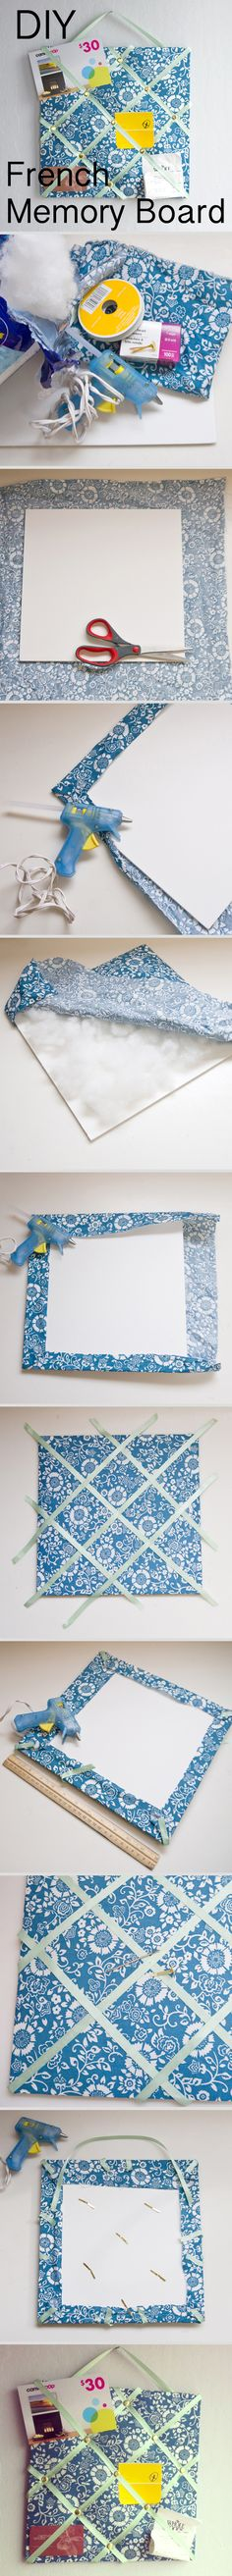 """How to make a memory board.""  Wow, great timing! I was just trying to figure out how to make a pincushion using a ribbon I love to help tuft it! A little more foam and I have a winner!"